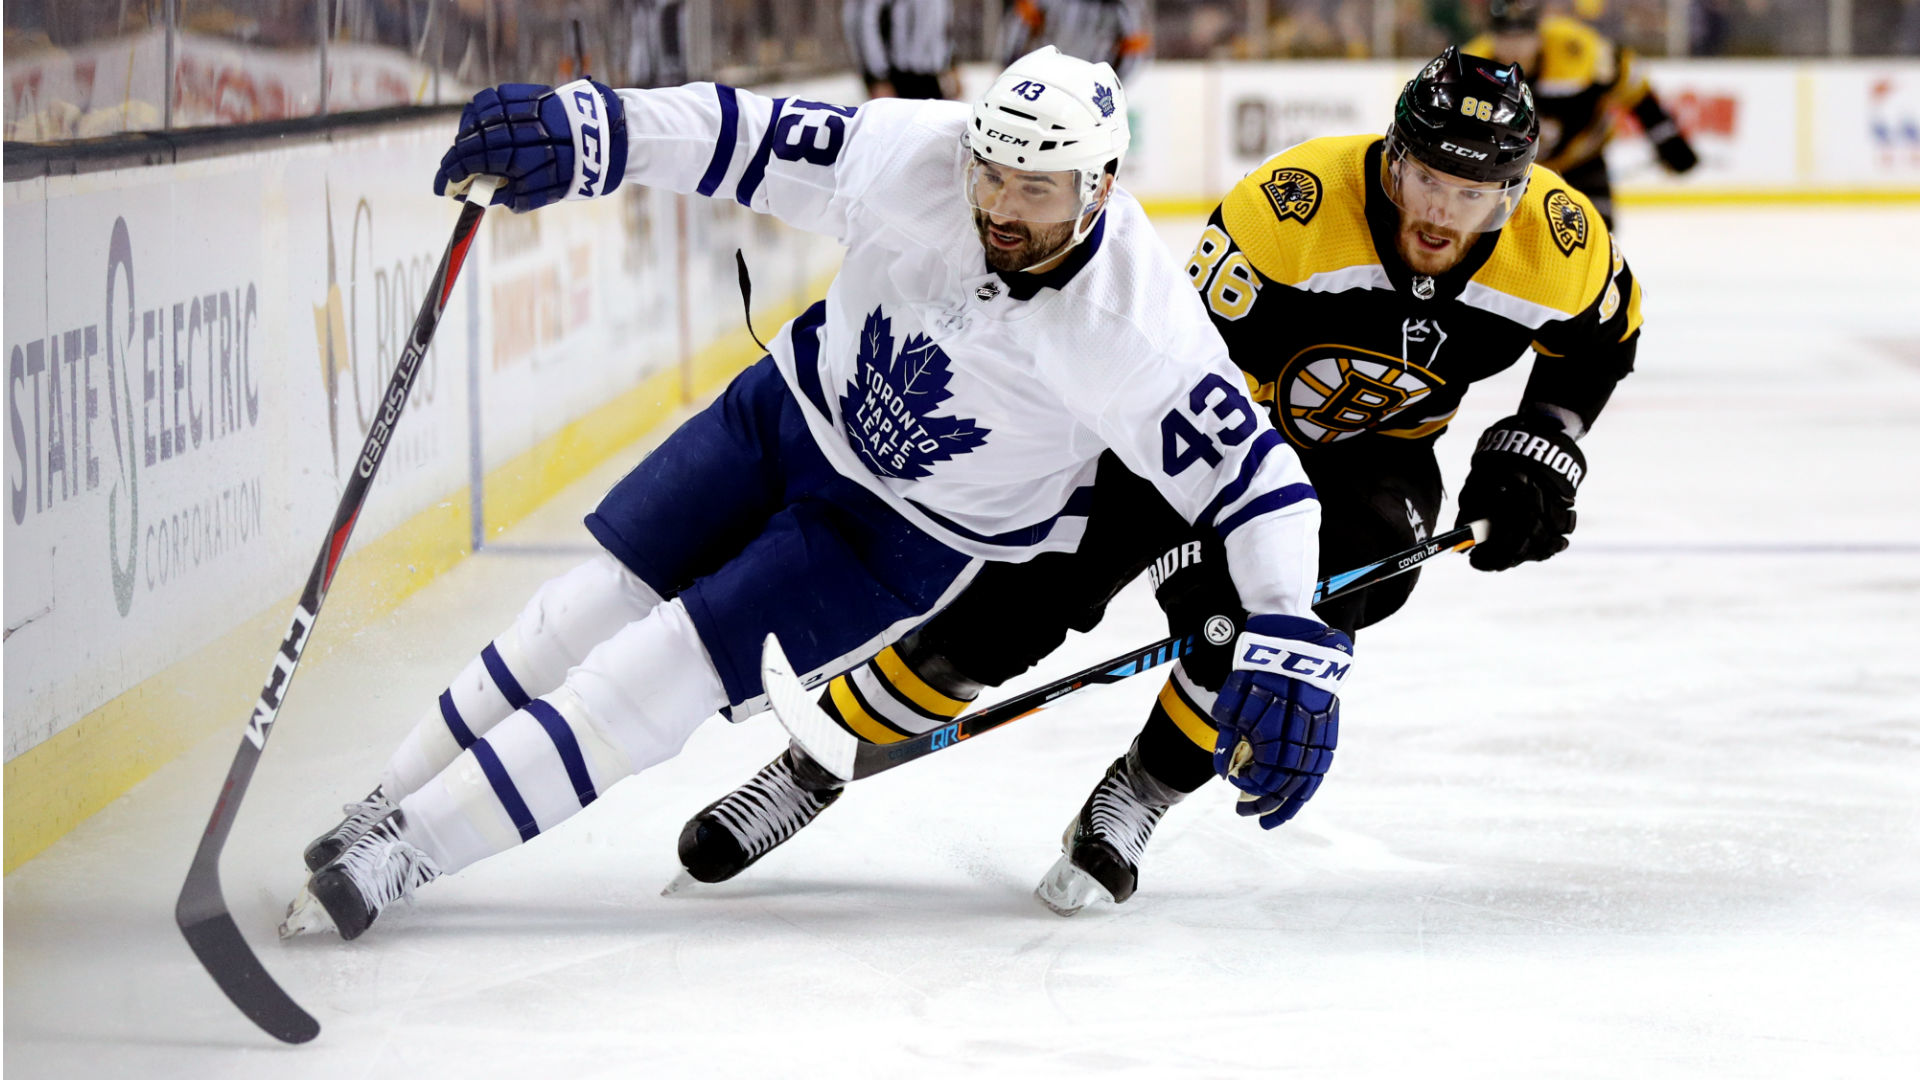 Leafs down Bruins to force Game 7 in Boston